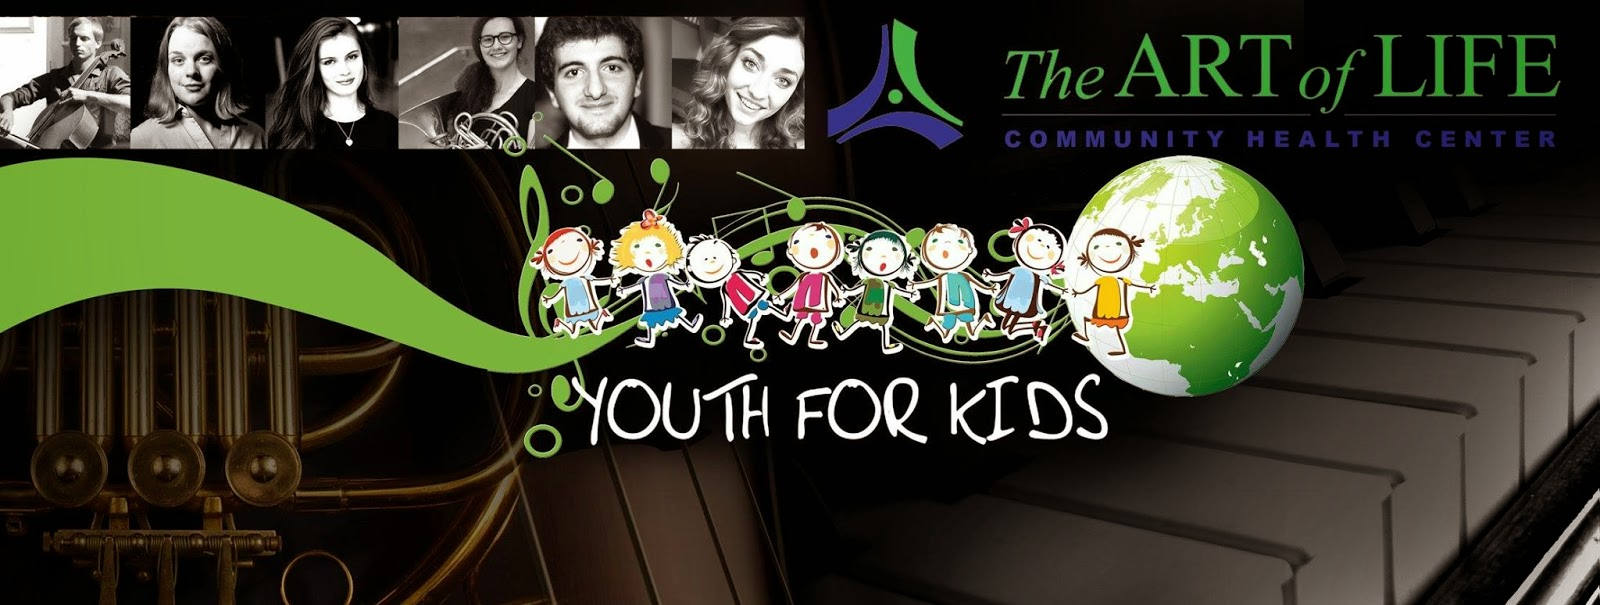 TAOL Health presents: Youth for Kids: Classical Music Charity Concert